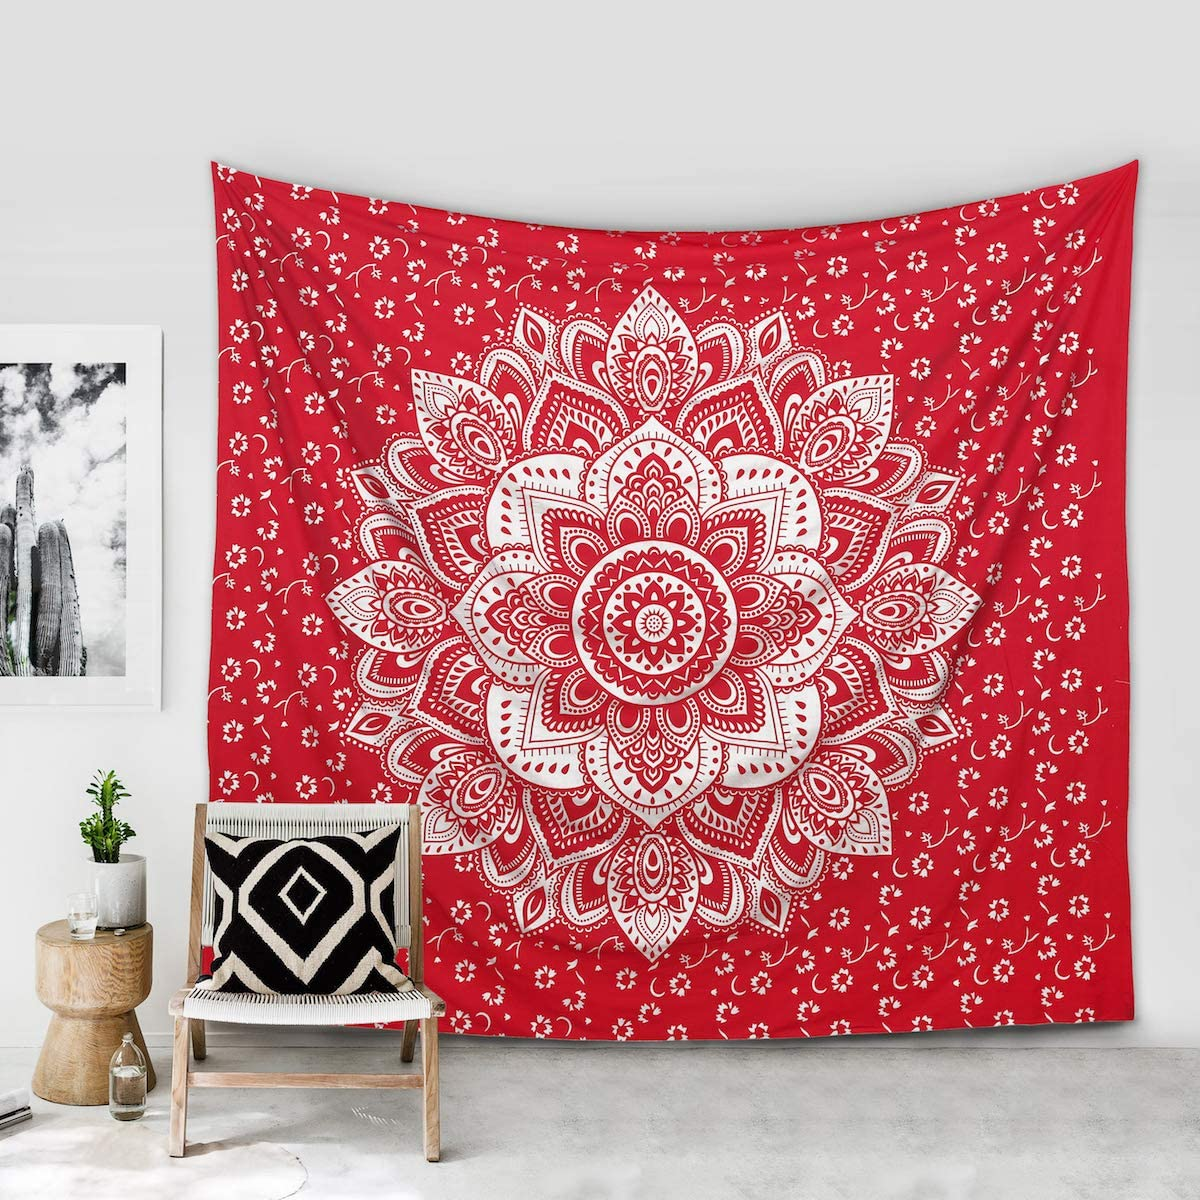 Madhu International Psychedelic Tapestry Wall Hanging - Mandala Tapestry - Bohemian Wall Decor - Hippie Cotton Tapestries Ombre Gypsy Tapestry for All Rooms - King Size - 90x108 Inches, Red Silver